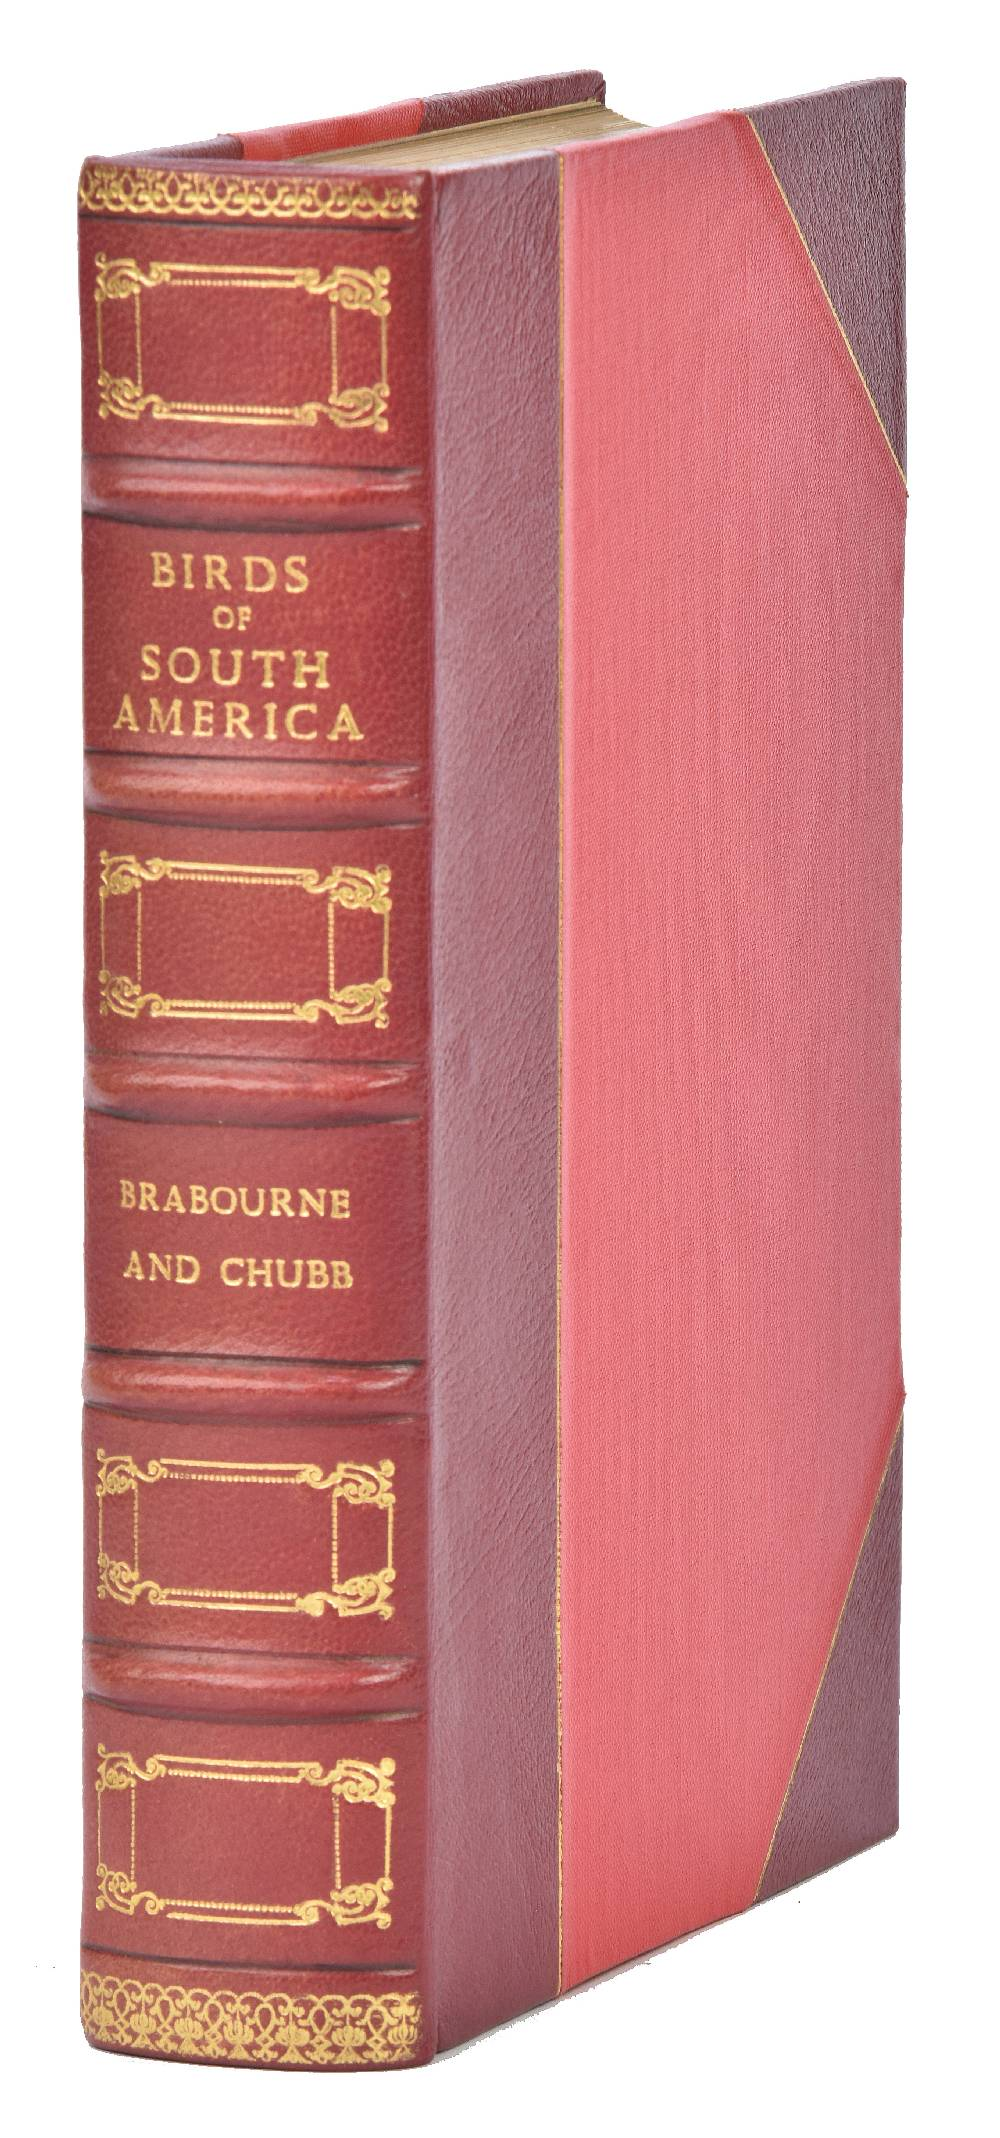 Lot 54 - Brabourne (Wyndham Knatchbull-Hugessen, 3rd Baron, & Charles Chubb). The Birds of South America, 1st